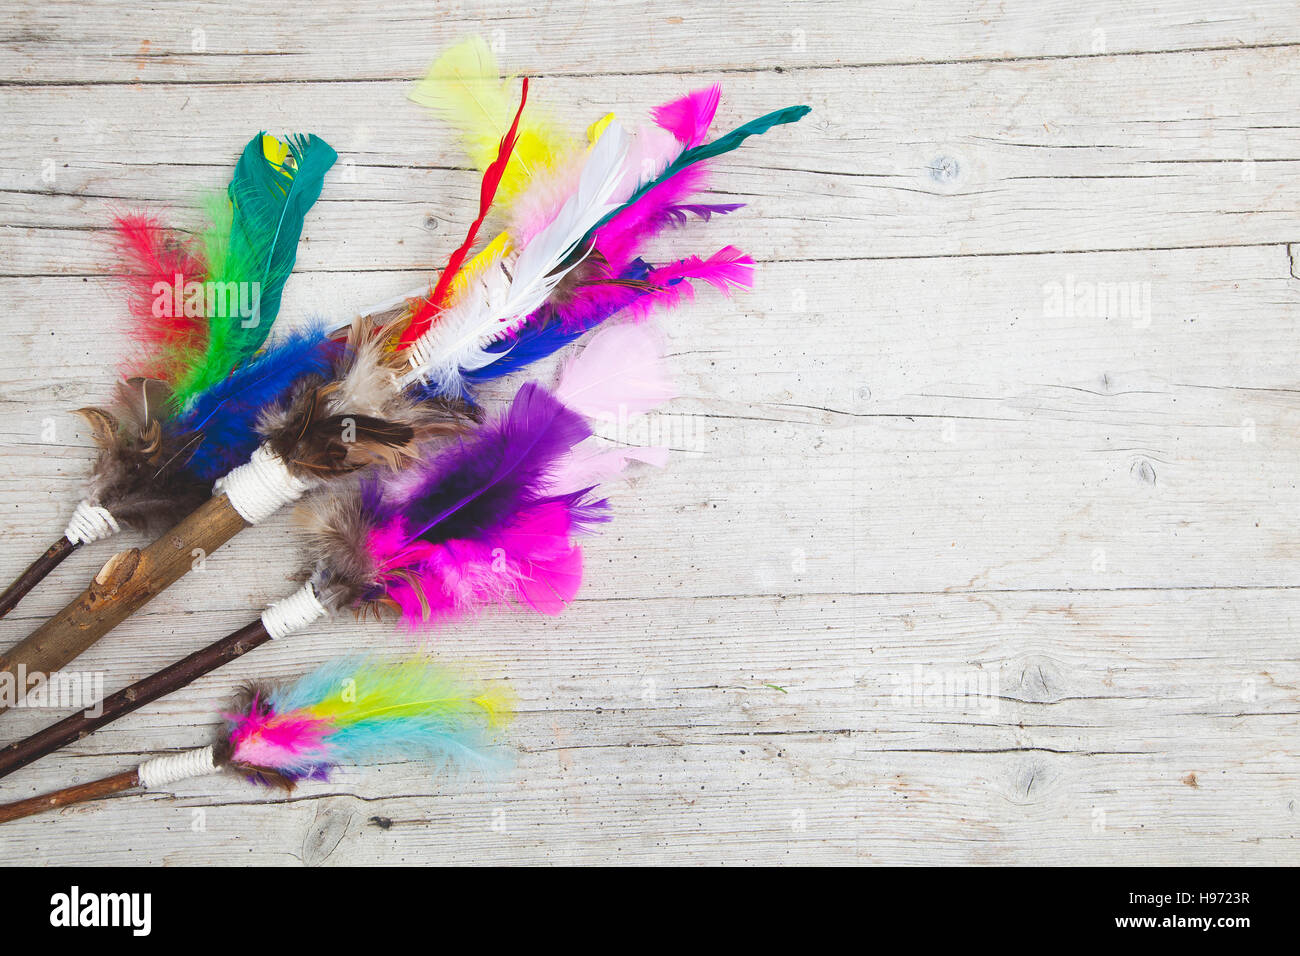 colorful feathers background - Stock Image